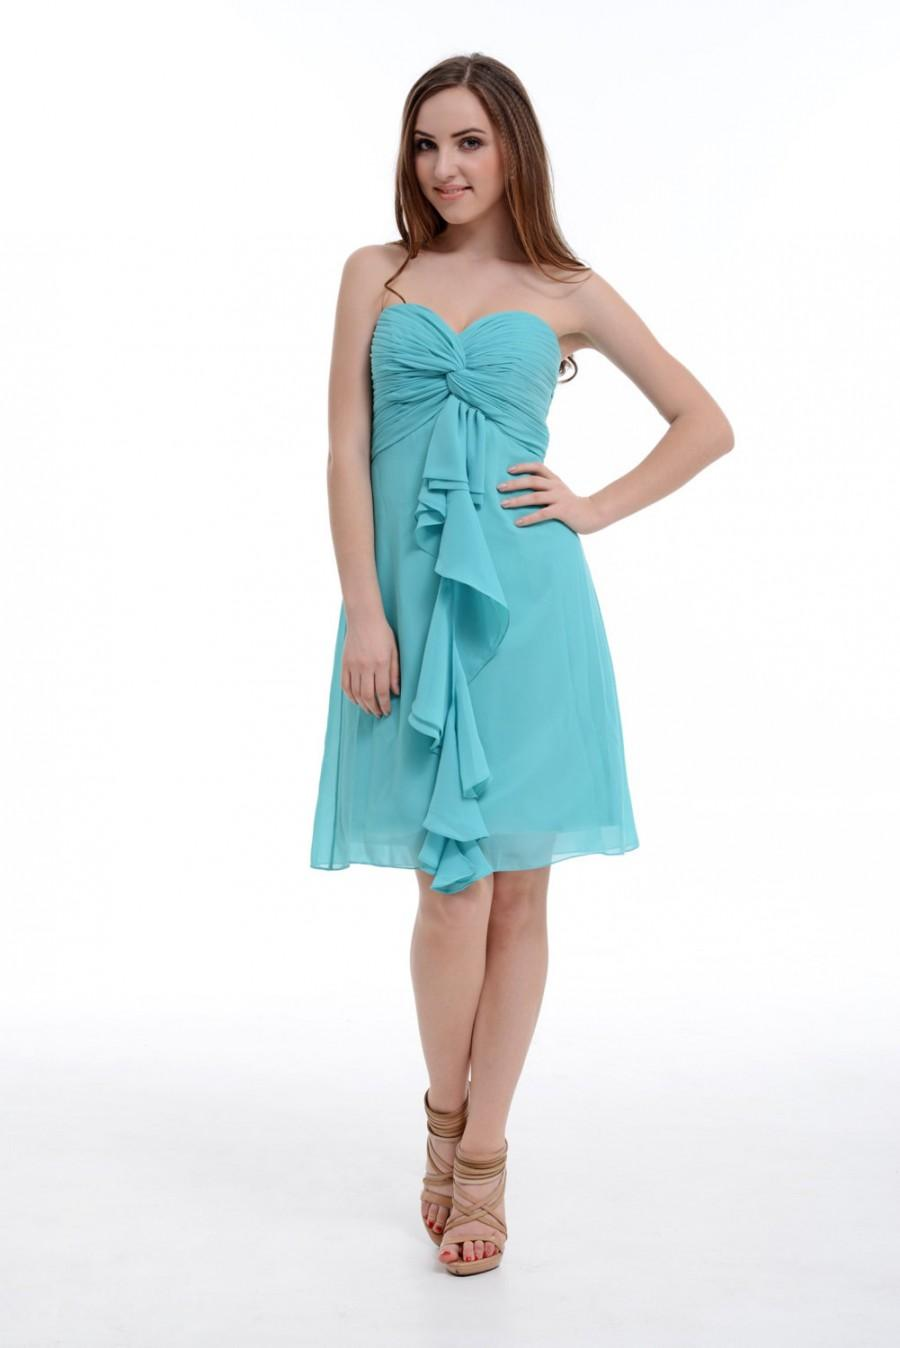 Turquoise Bridesmaid Dress A Line Sweetheart Chiffon Bridesmaid Dress Home Coming Dress